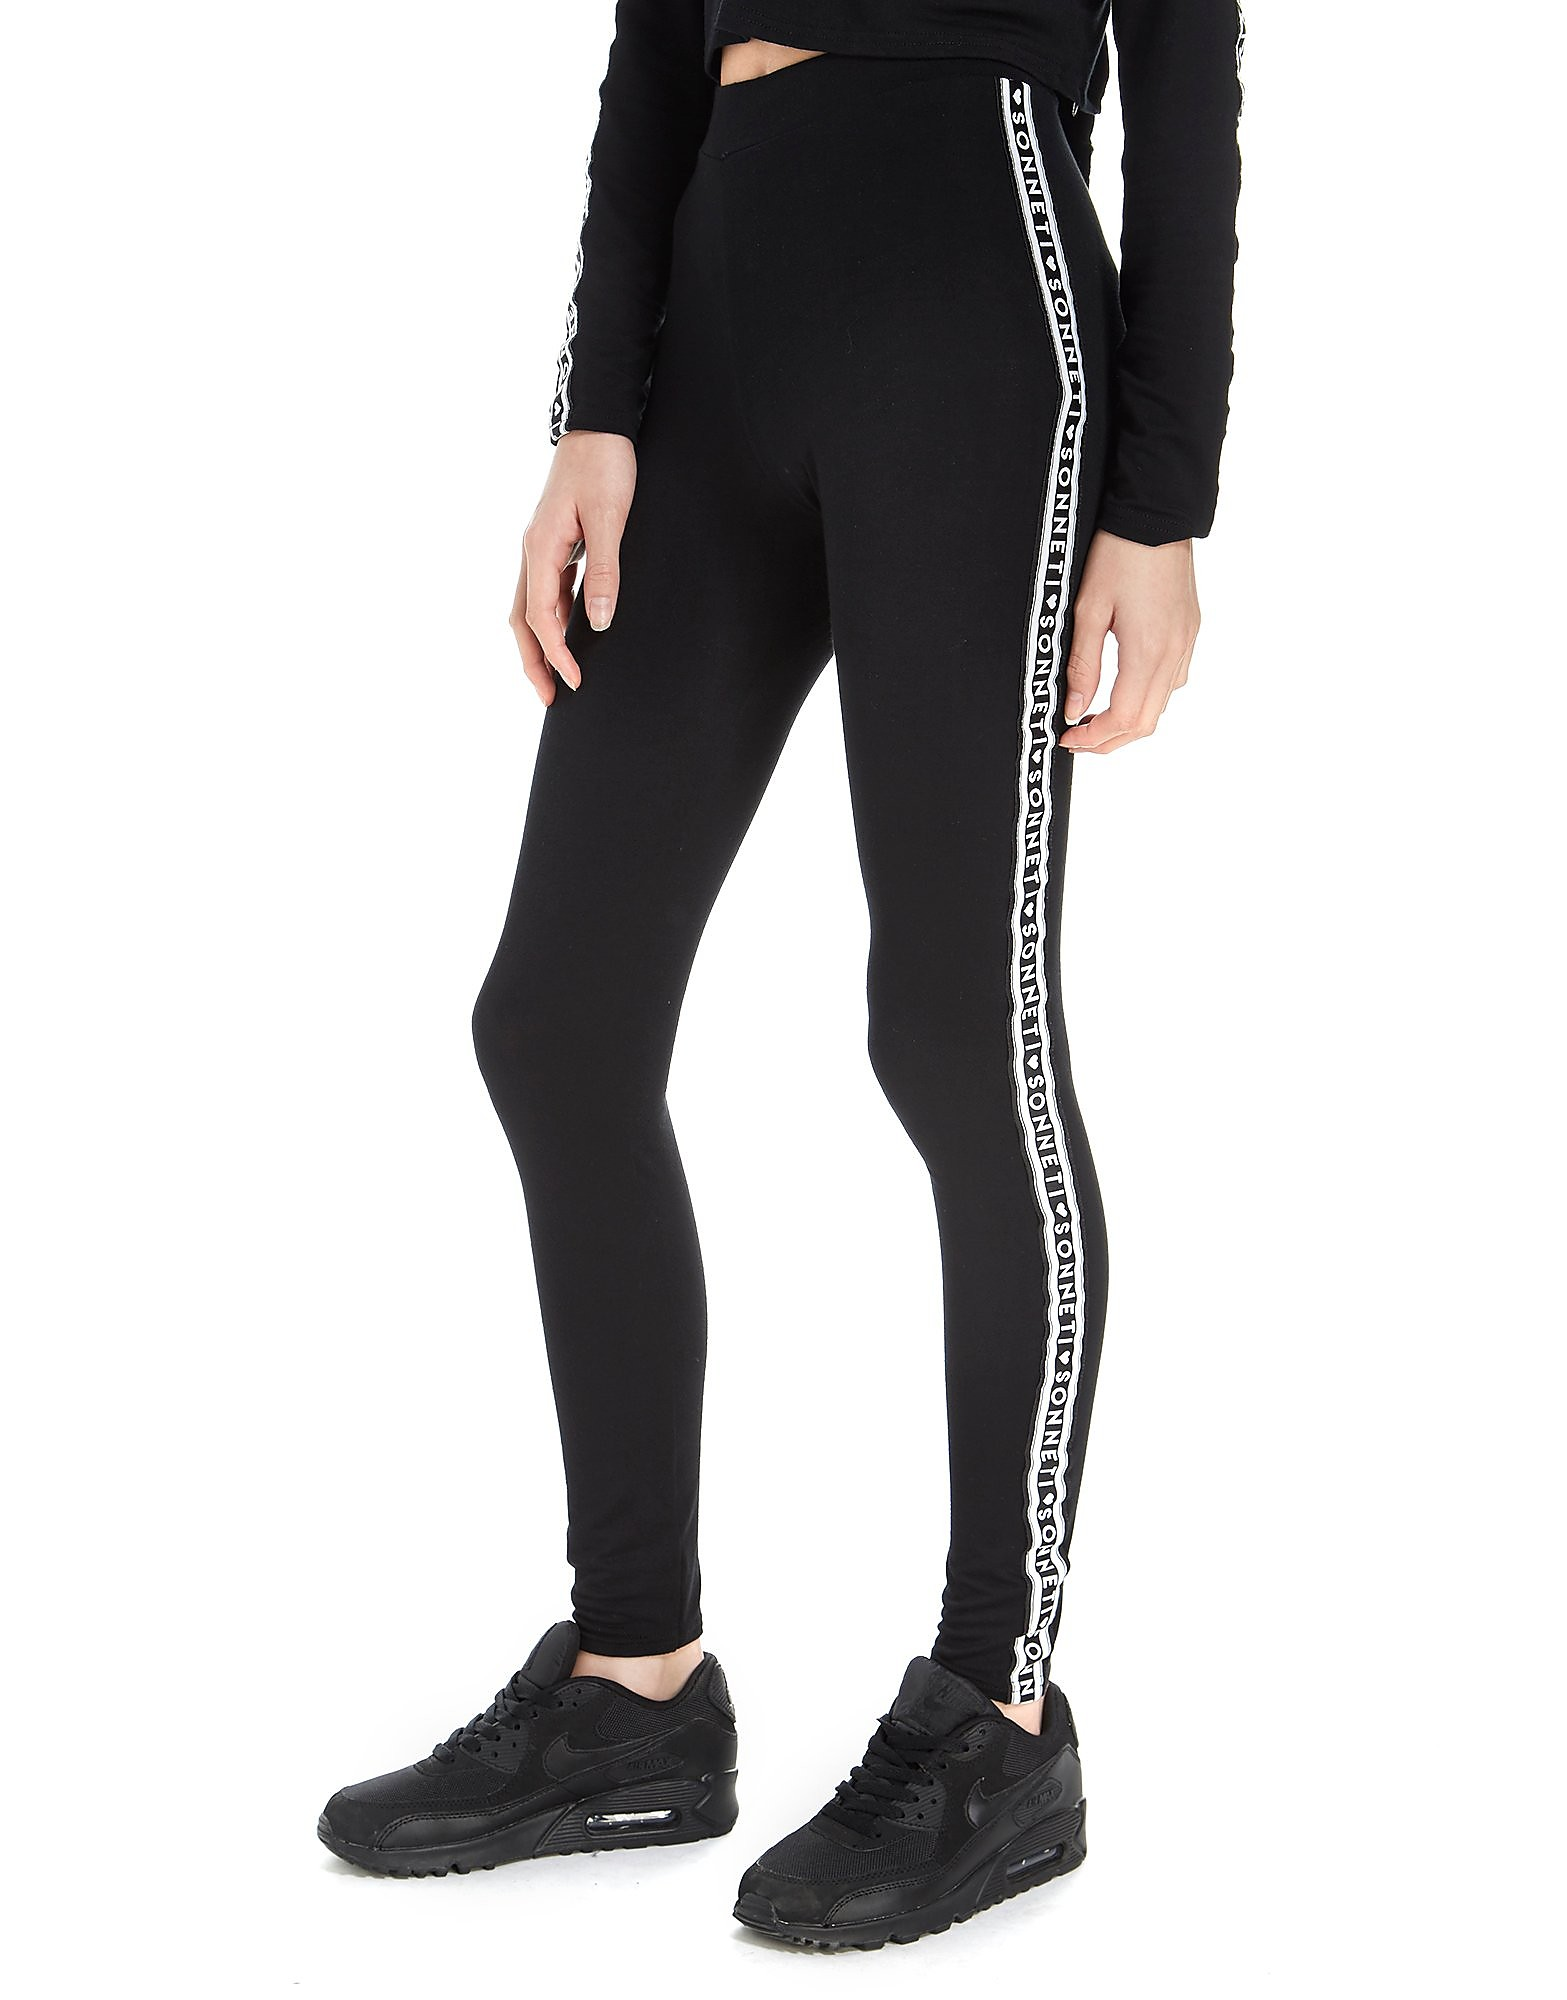 Sonneti Girls' Taper 2 Leggings Junior